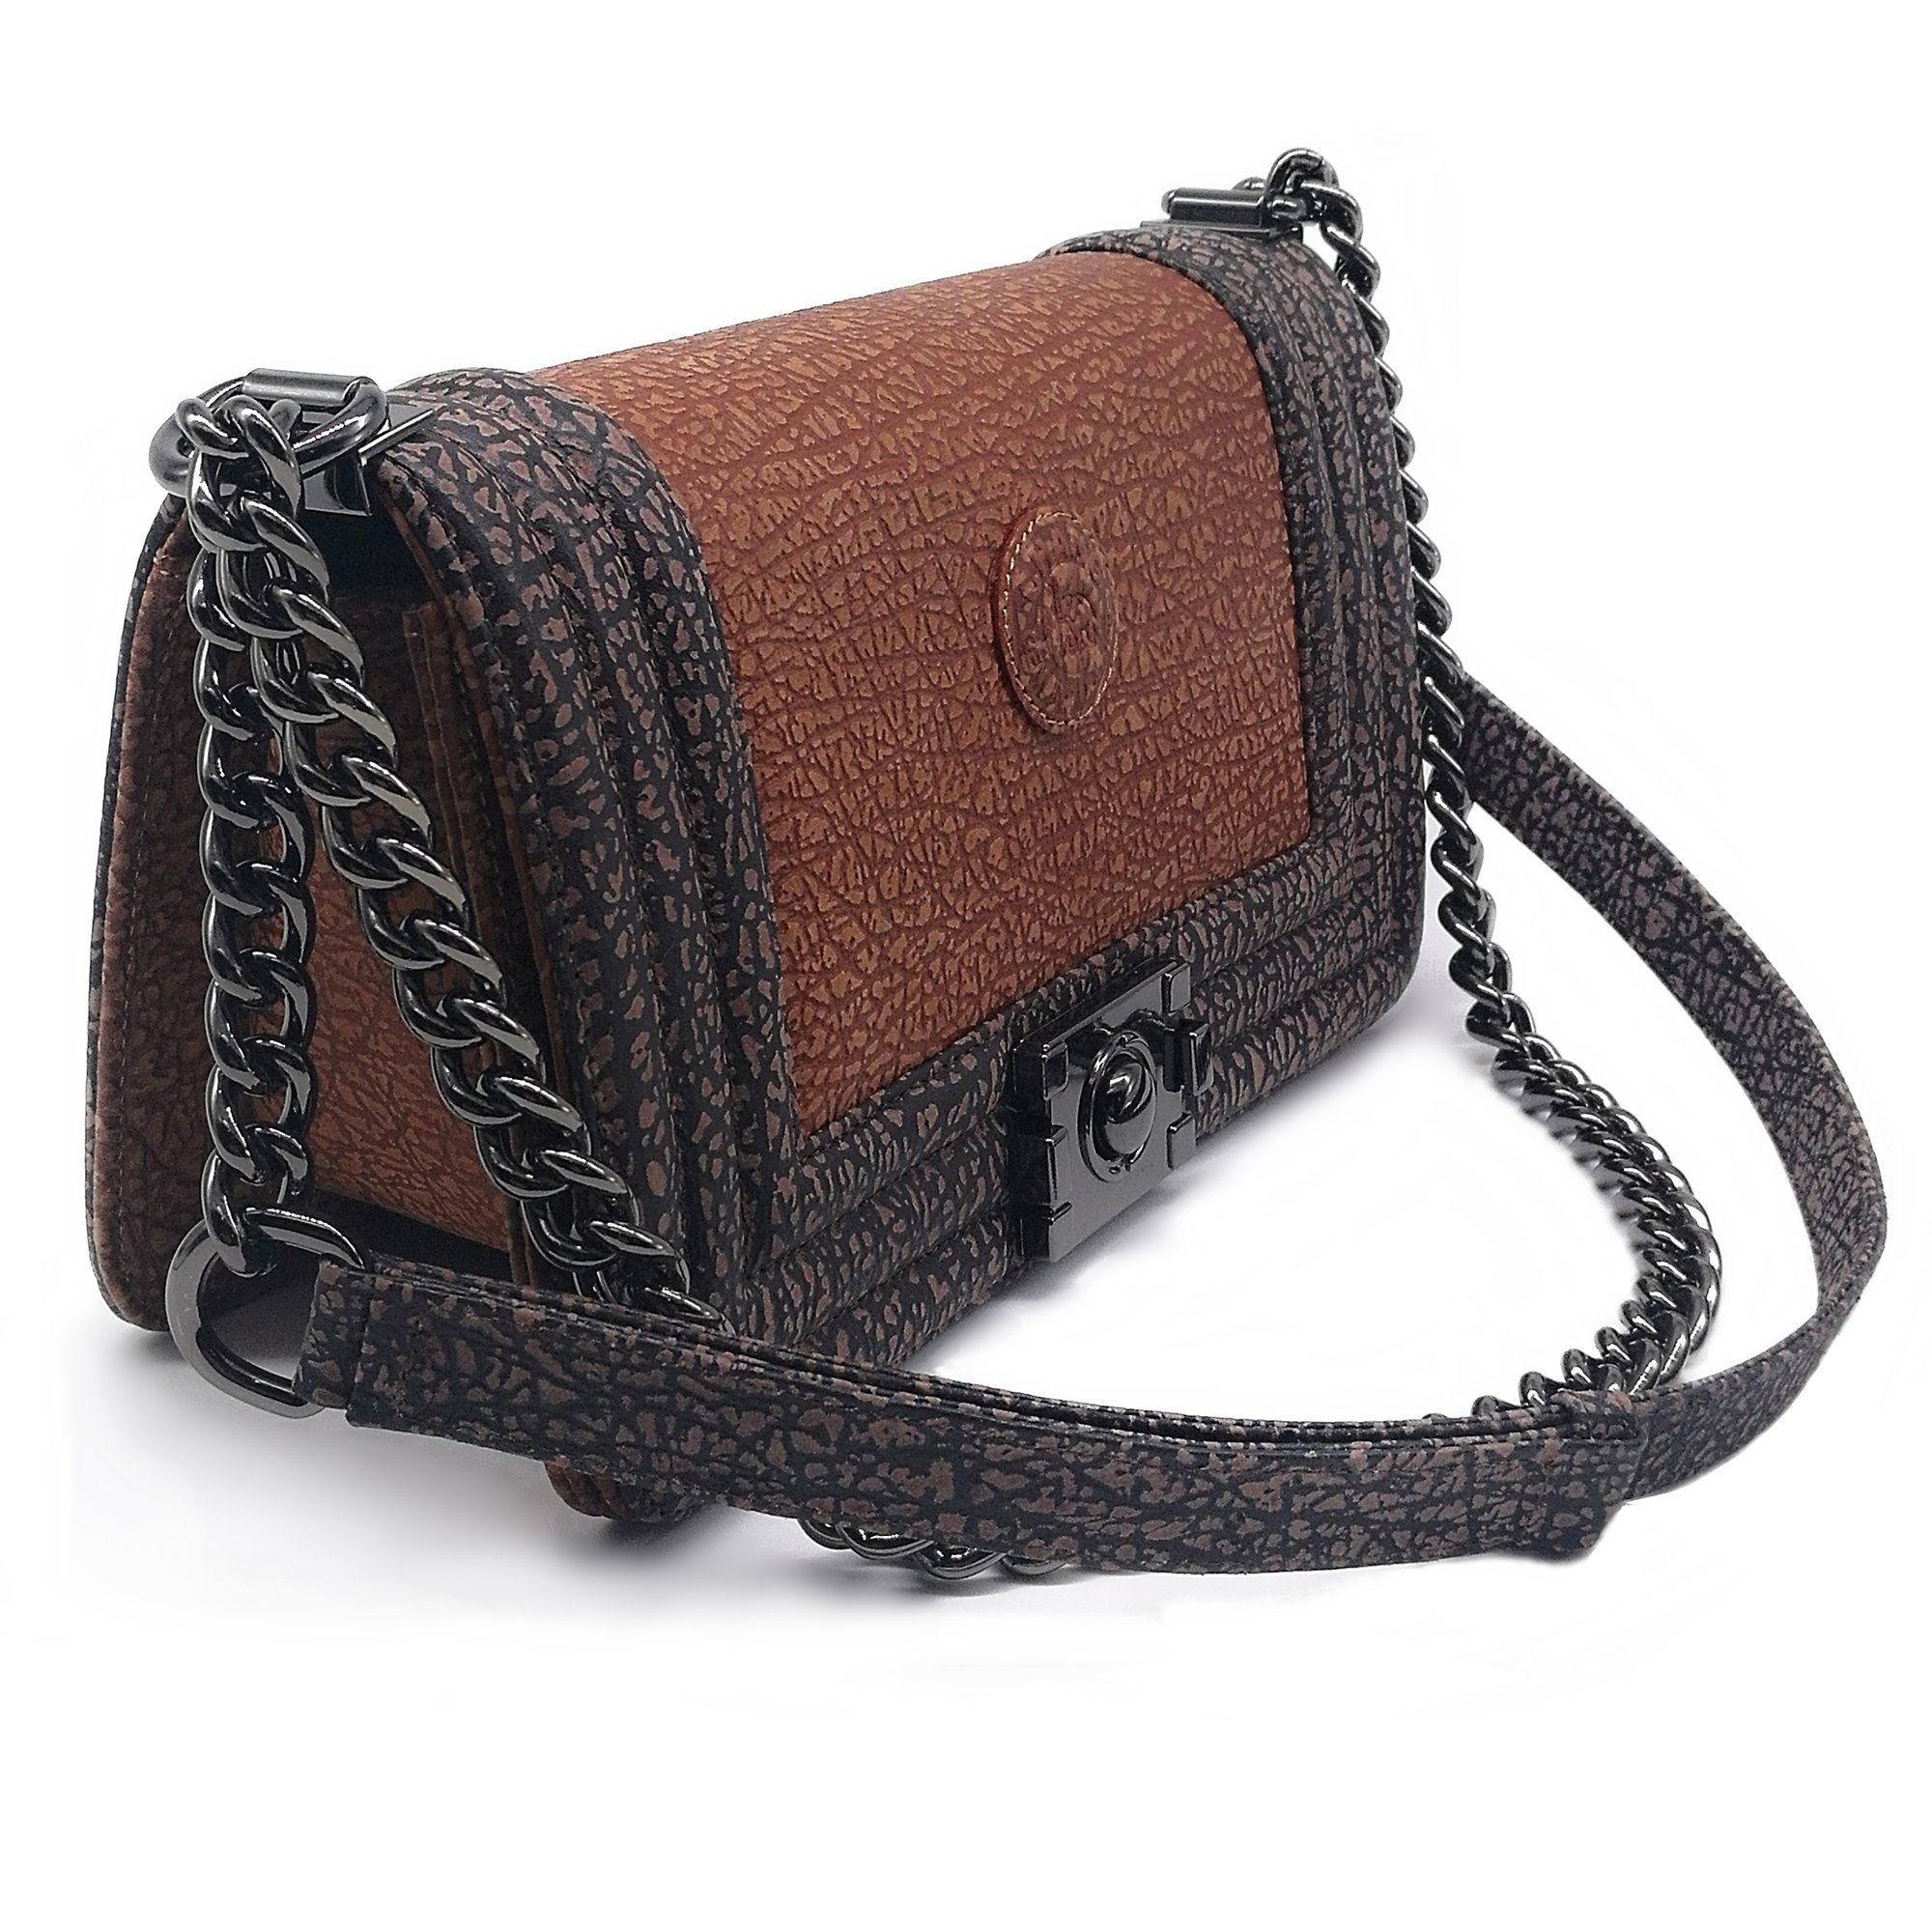 Genuine Leather Shoulder Bag For Women Classic Style Size 25x14.5x7.5 CM-Light Brown by Treasure